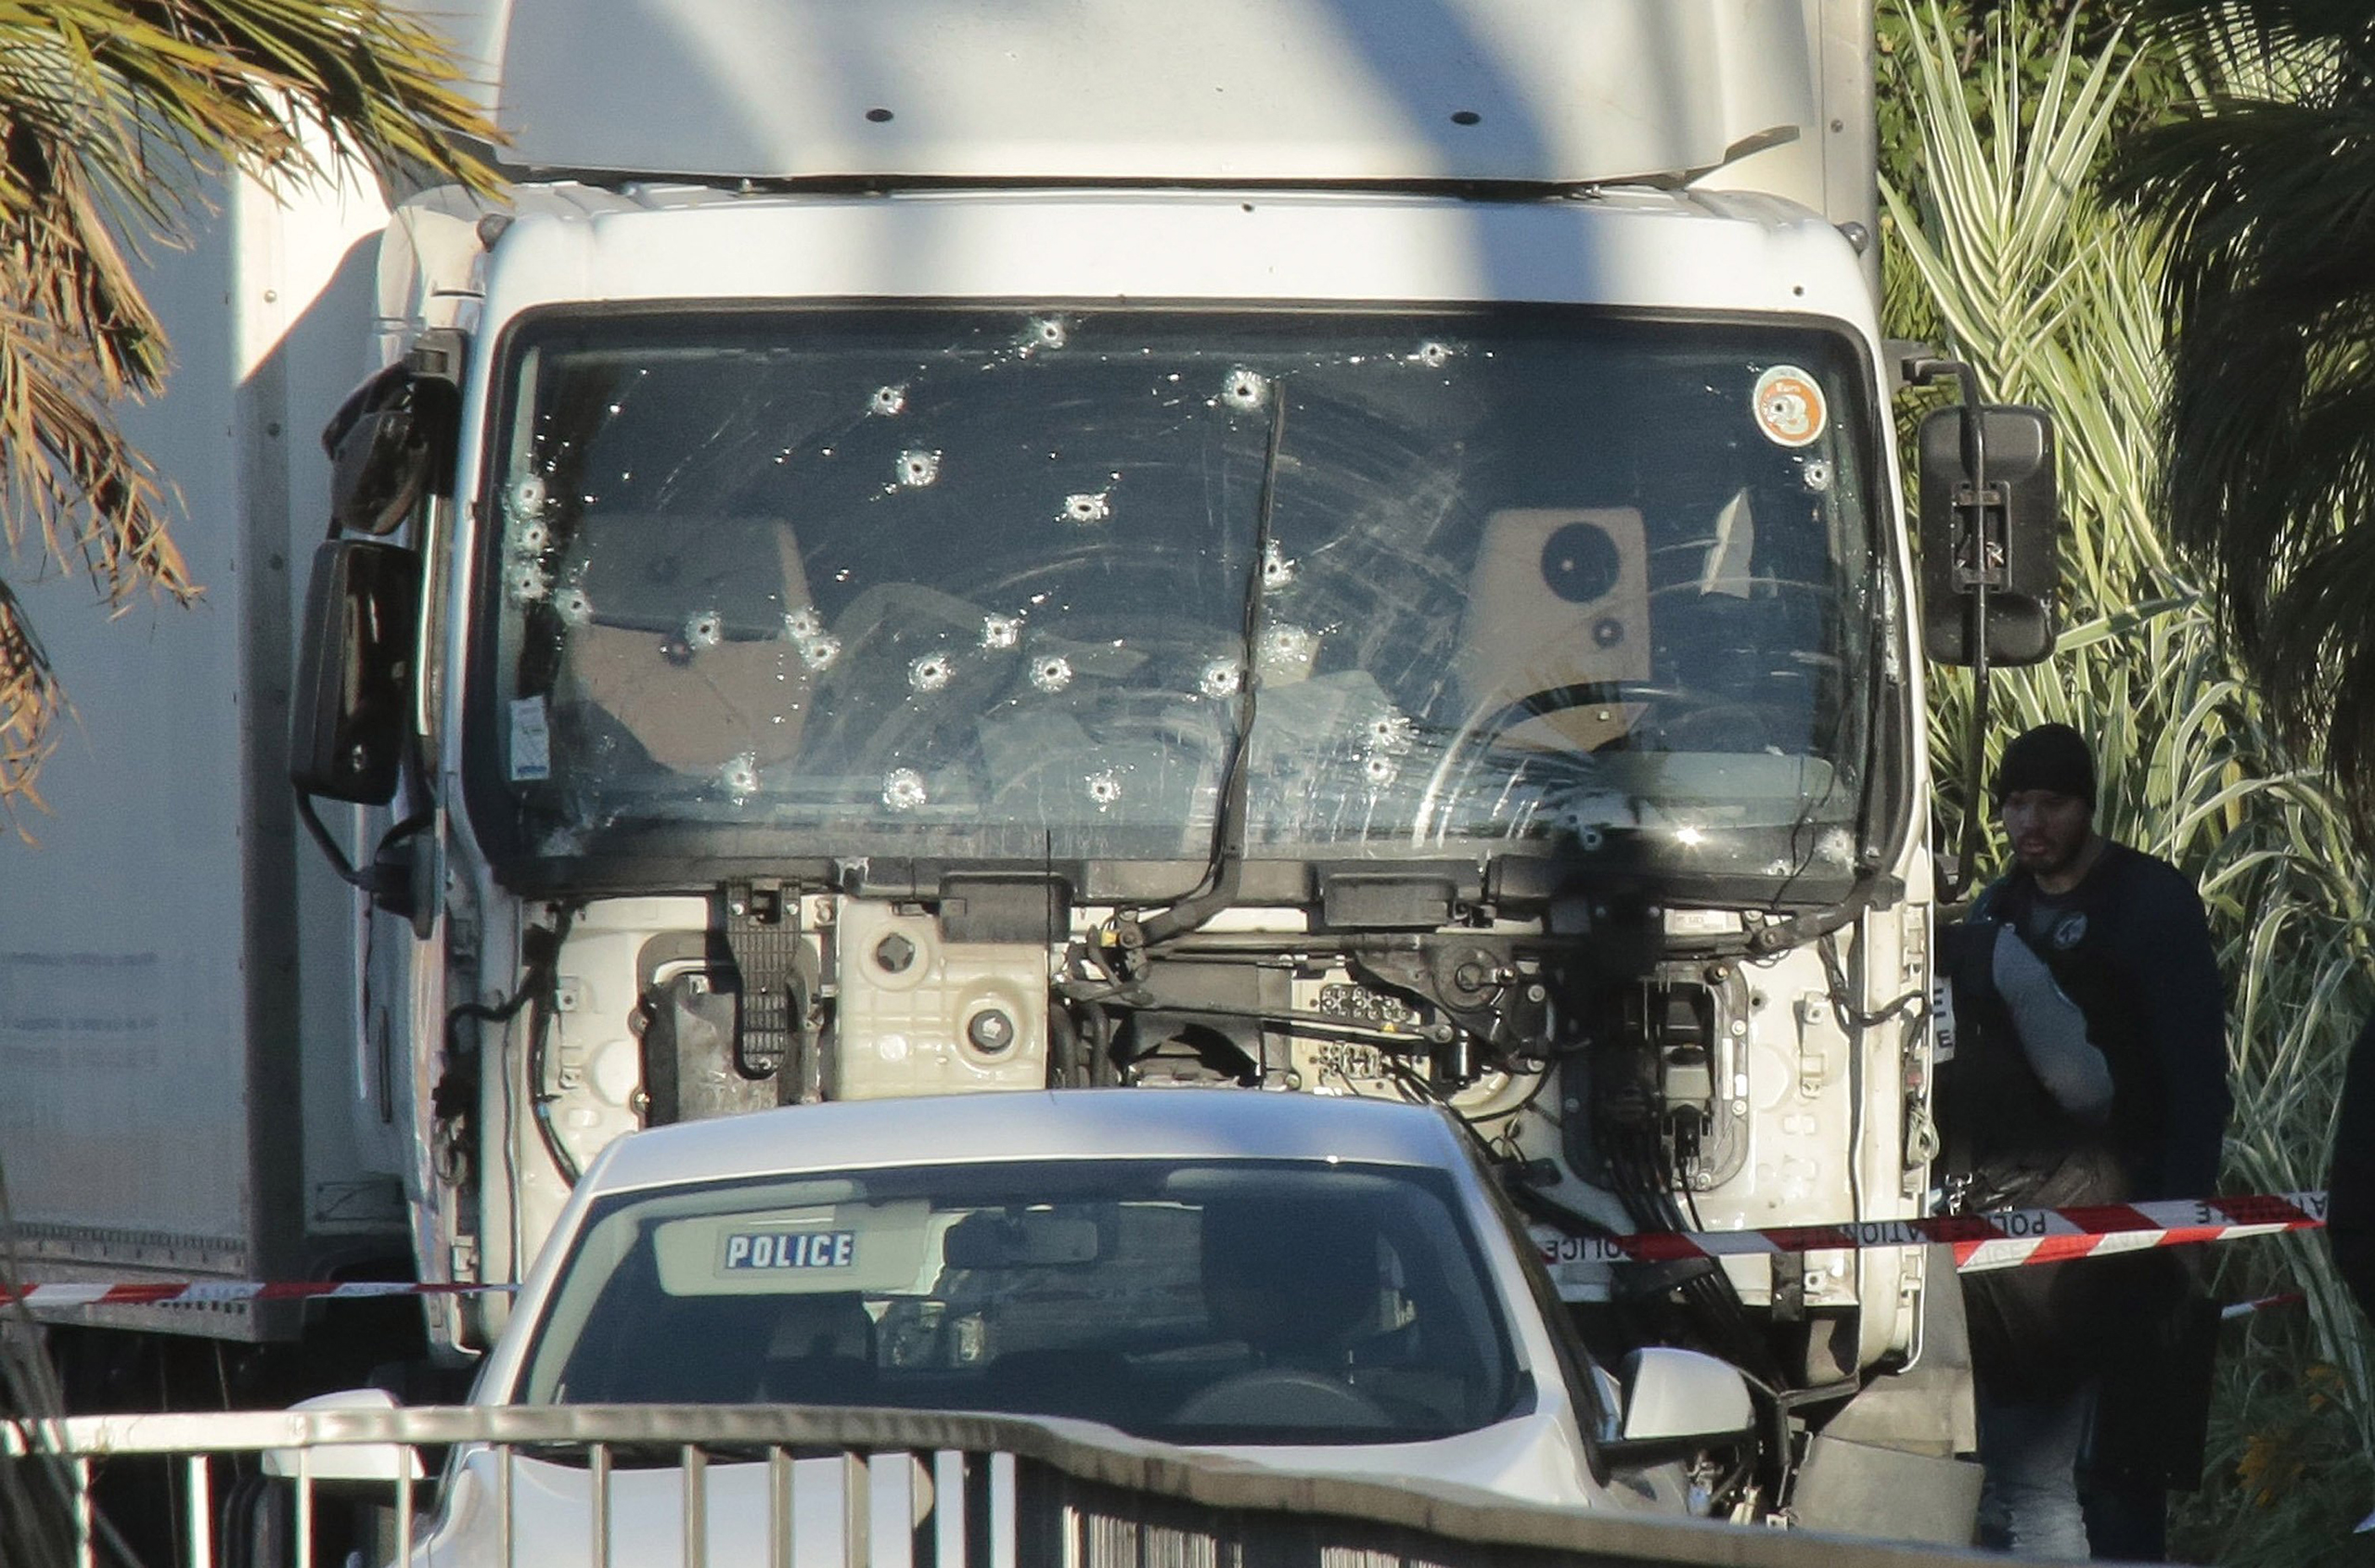 Forensic police investigate the truck at the scene of the terror attack on the Promenade des Anglais in Nice, France, on July 15, 2016. Authorities said a French-Tunisian attacker killed 84 people as he drove a truck through crowds, gathered to watch a firework display during Bastille Day celebrations. The attacker then opened fire on people in the crowd before being shot dead by police. Patrick Aventurier—Getty Images